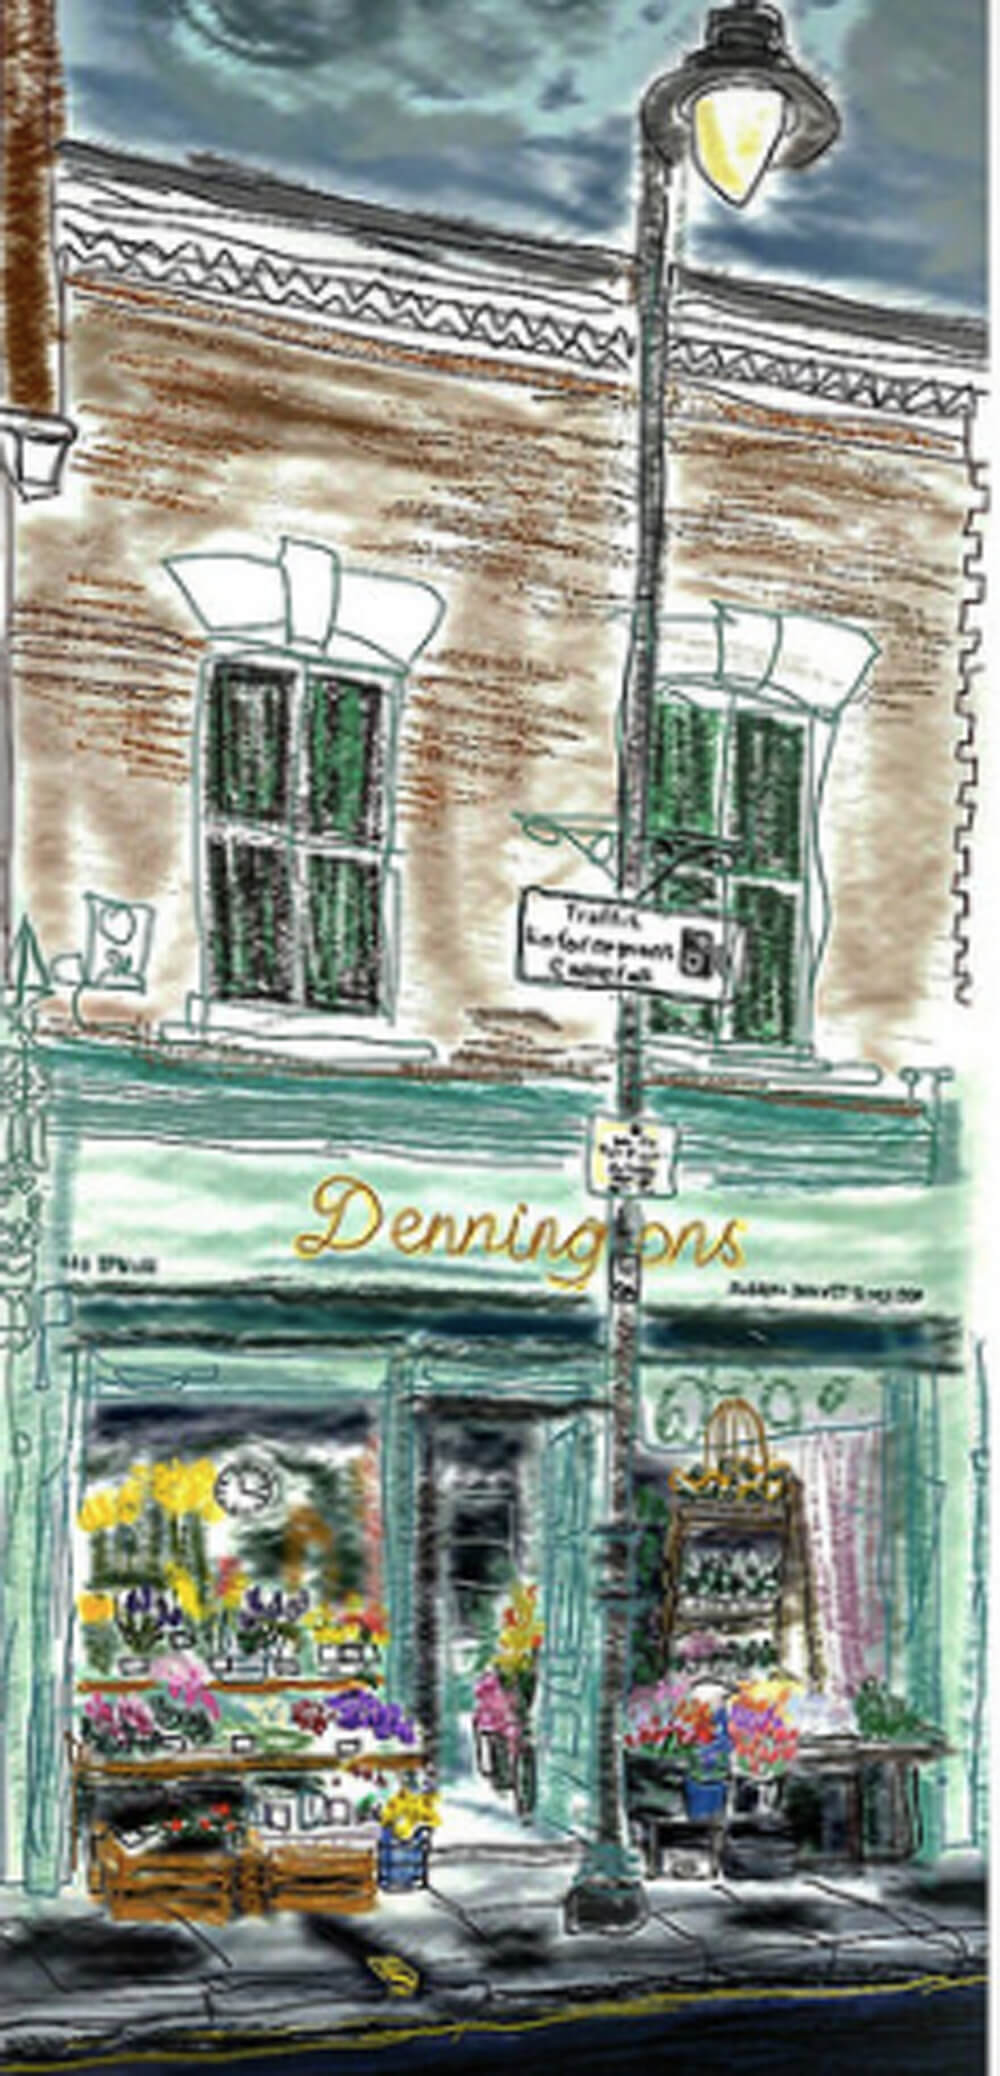 Drawing of Dennington's on Roman Road by Bex Shaw